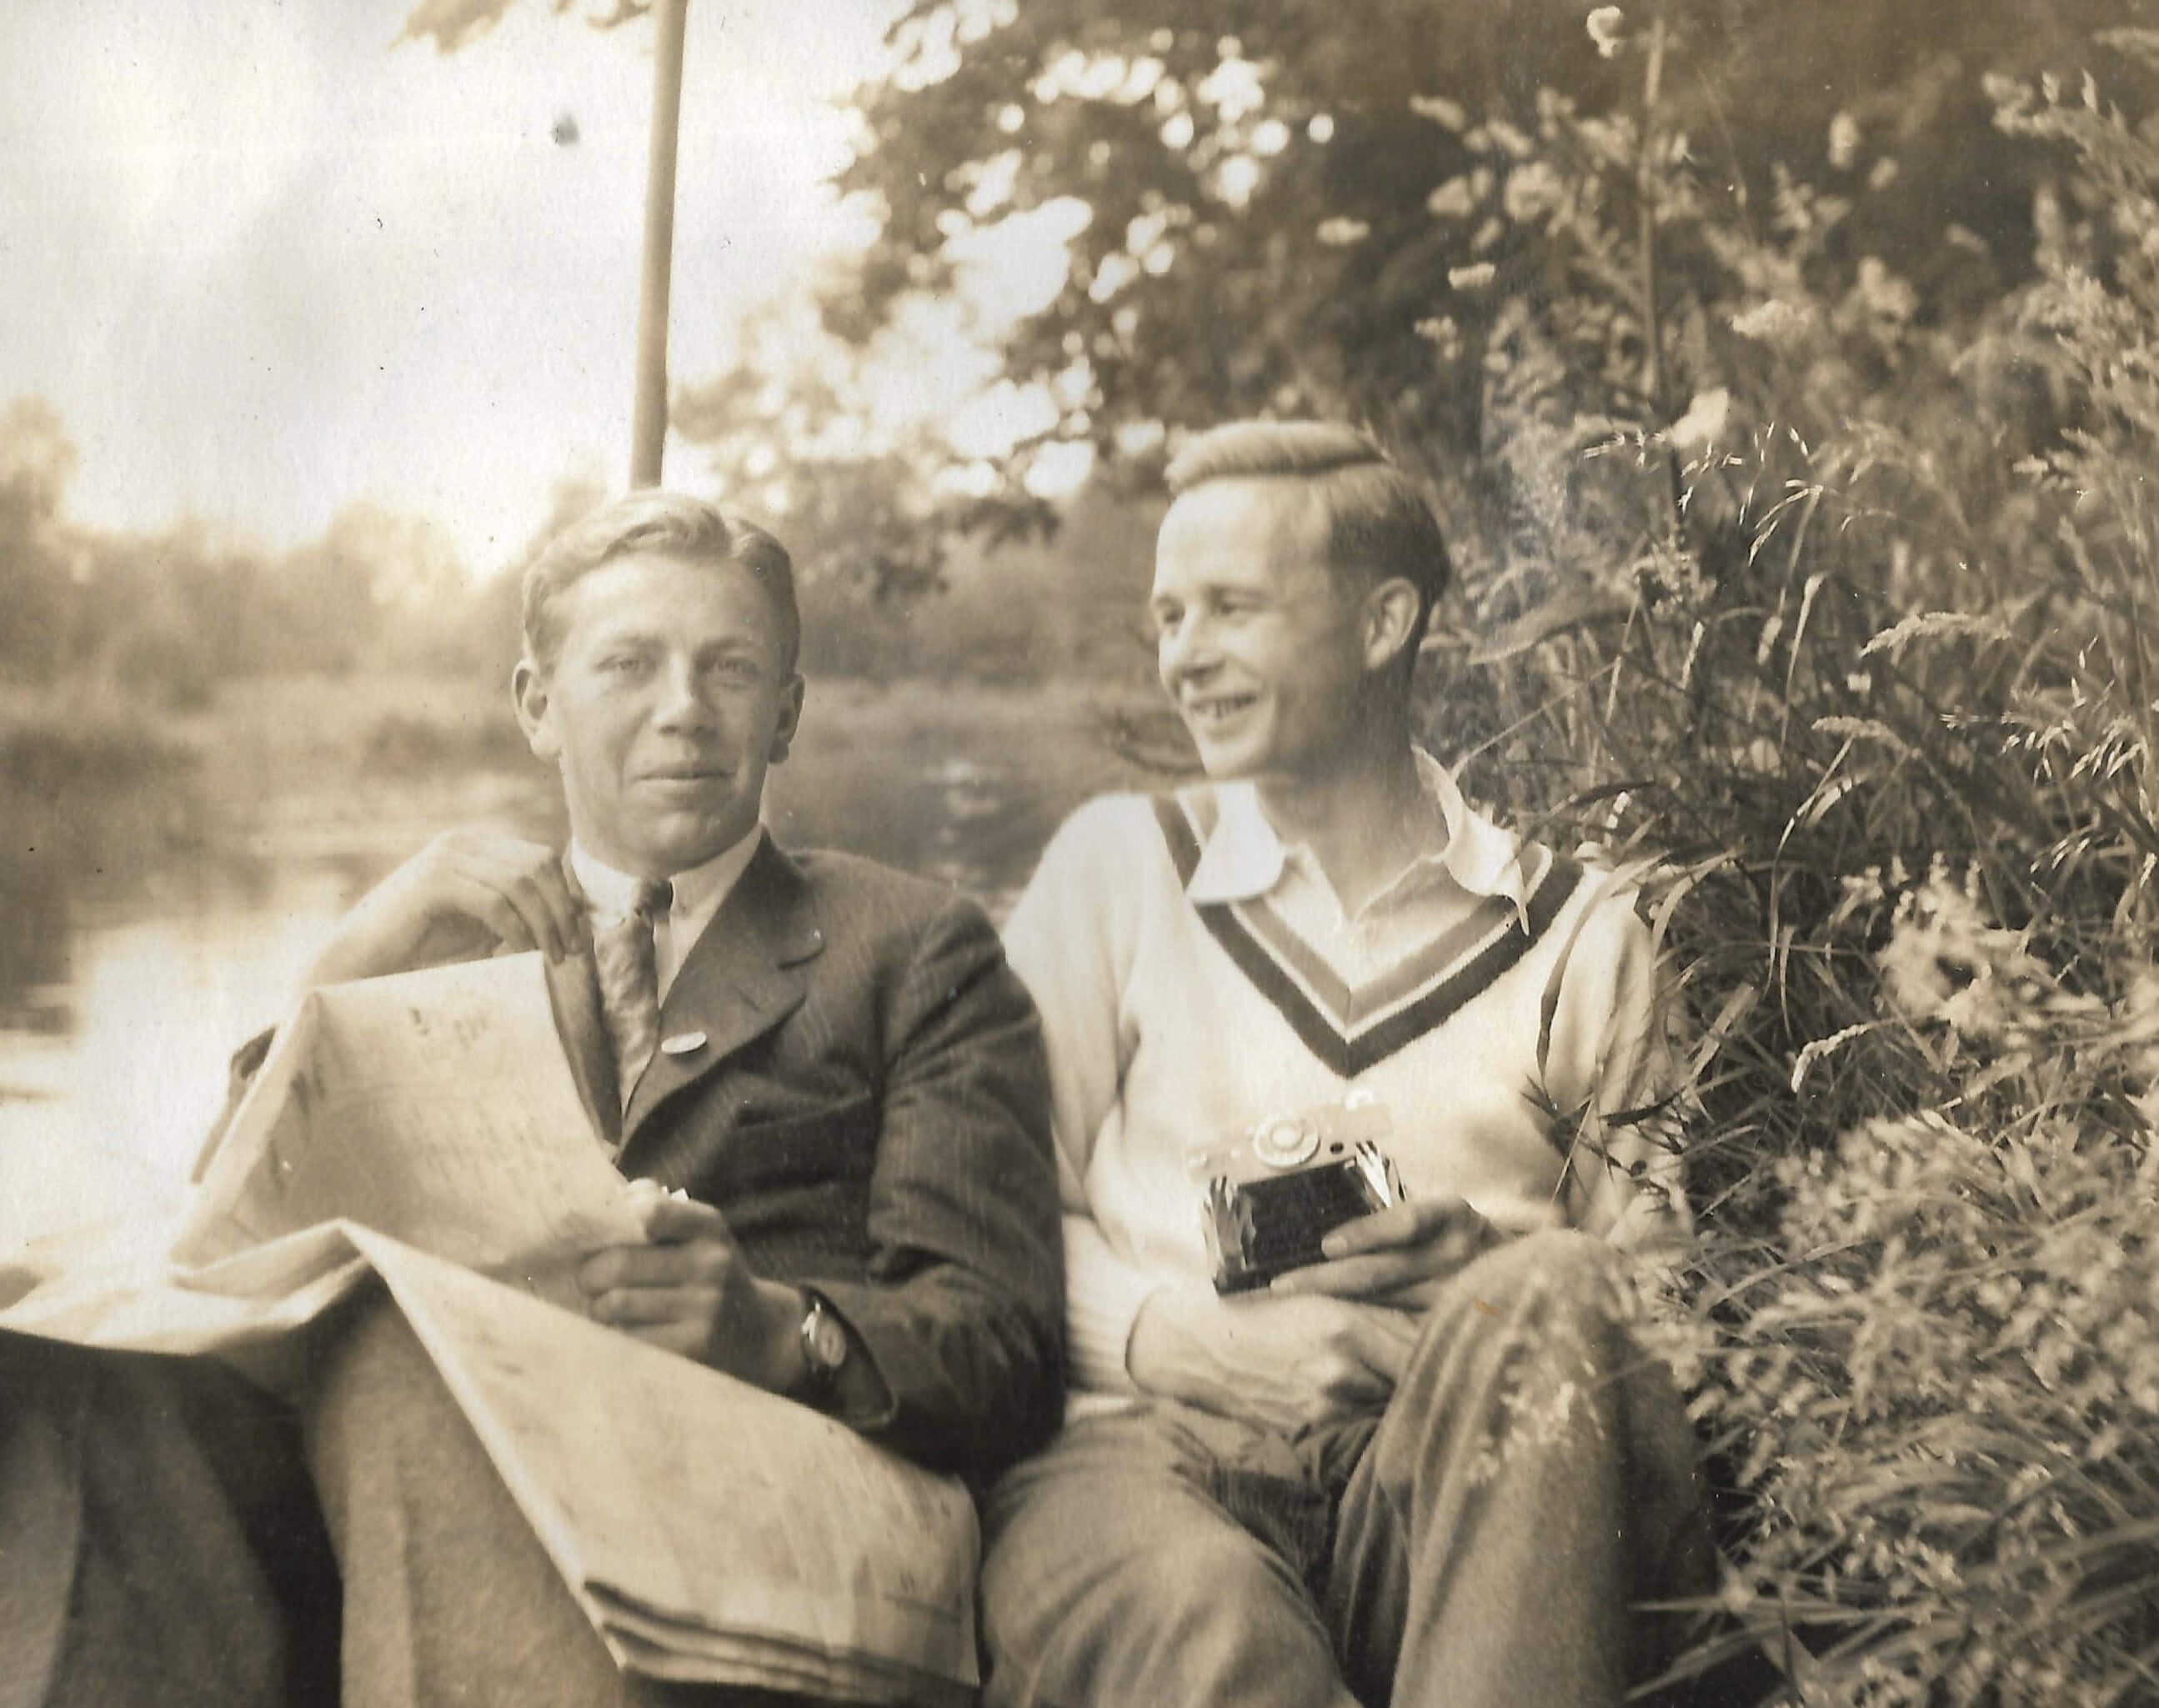 George Rickey sitting with friend, 1925